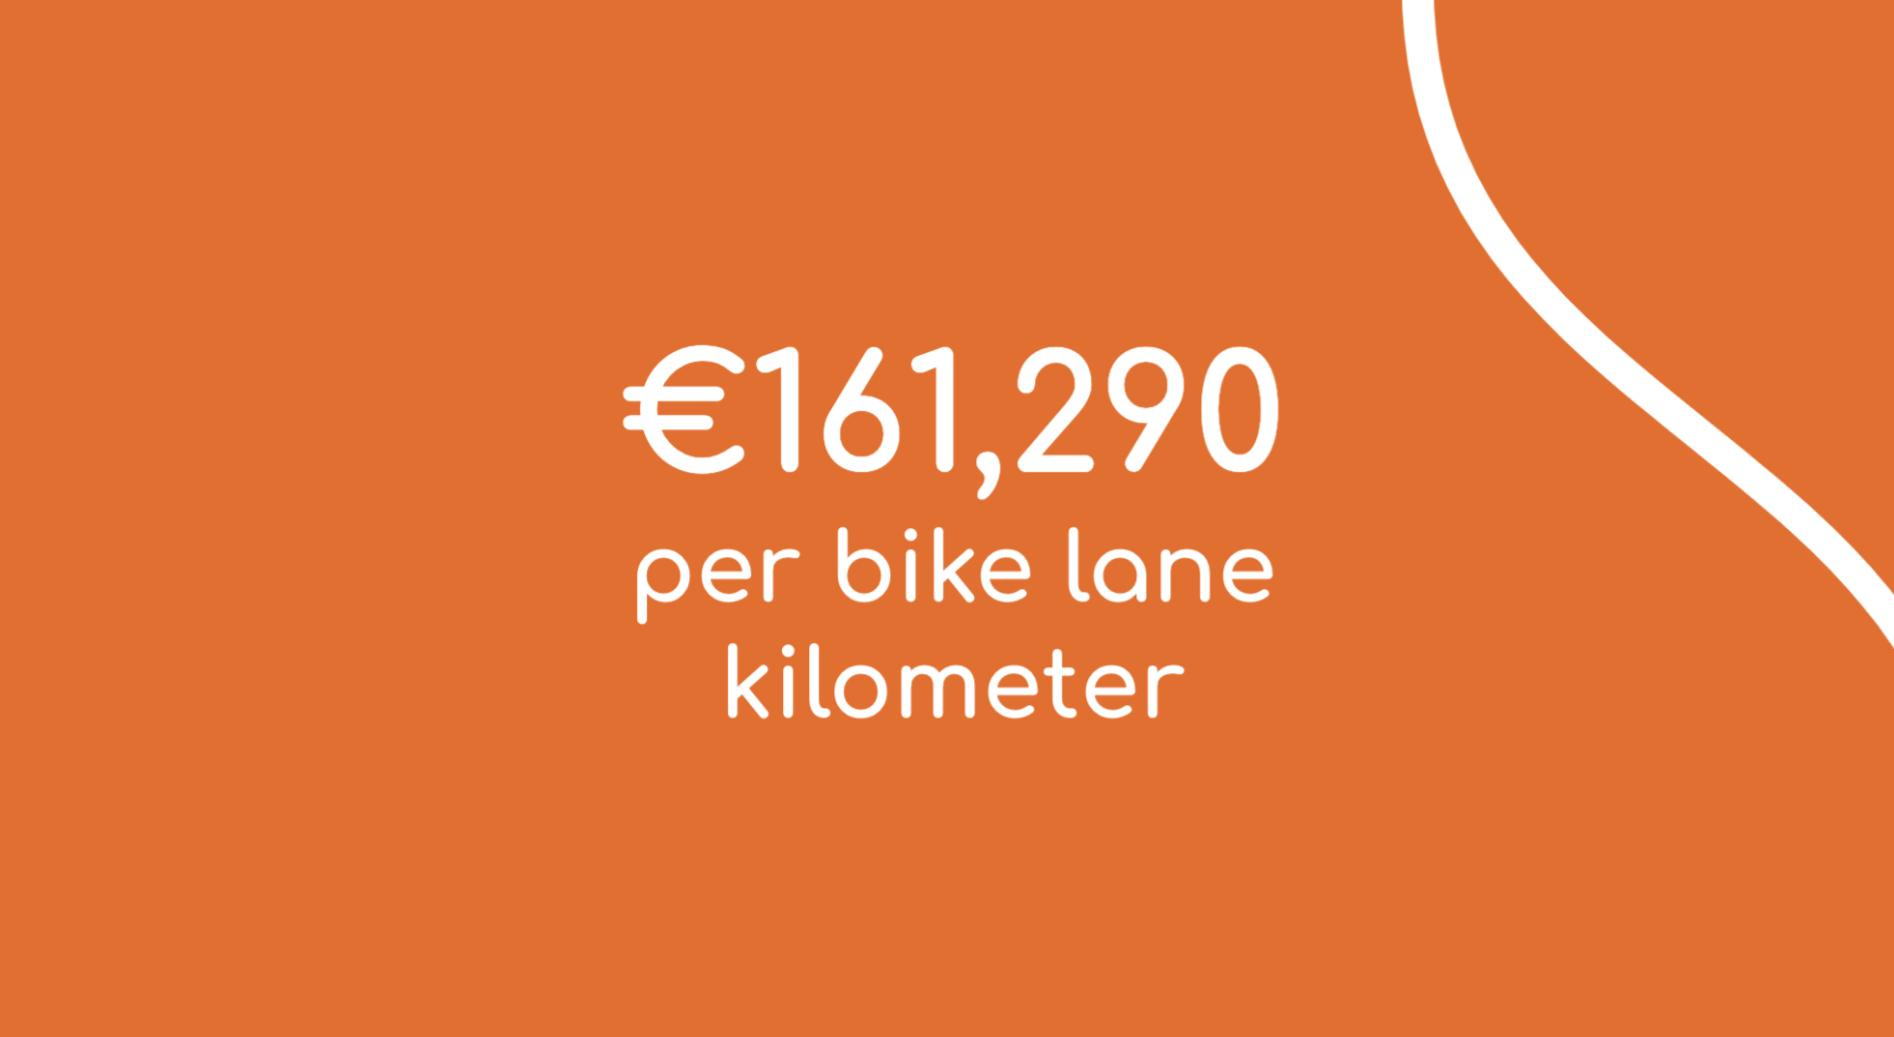 Huge Costs of Creating Physical Bike Paths